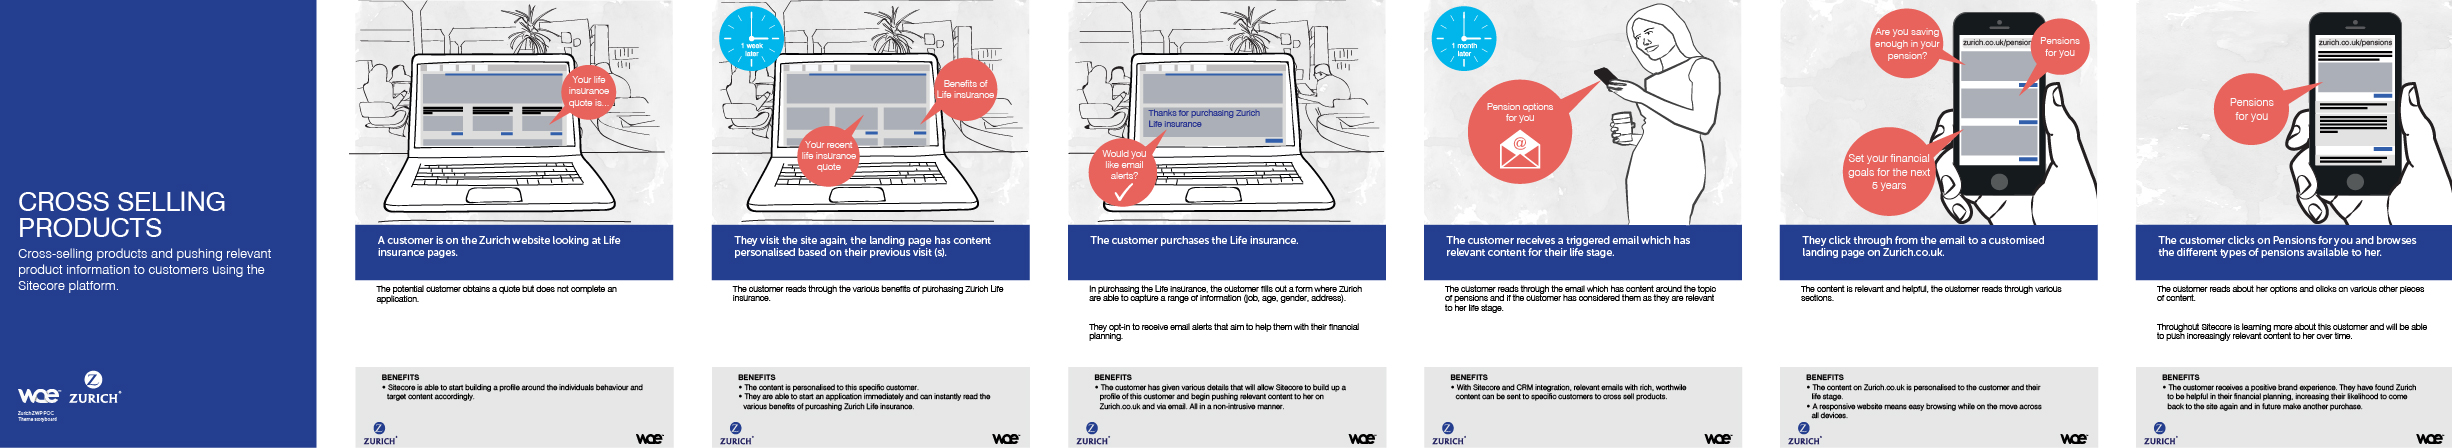 1 of 5 storyboards I created visualising the Zurich UK vision